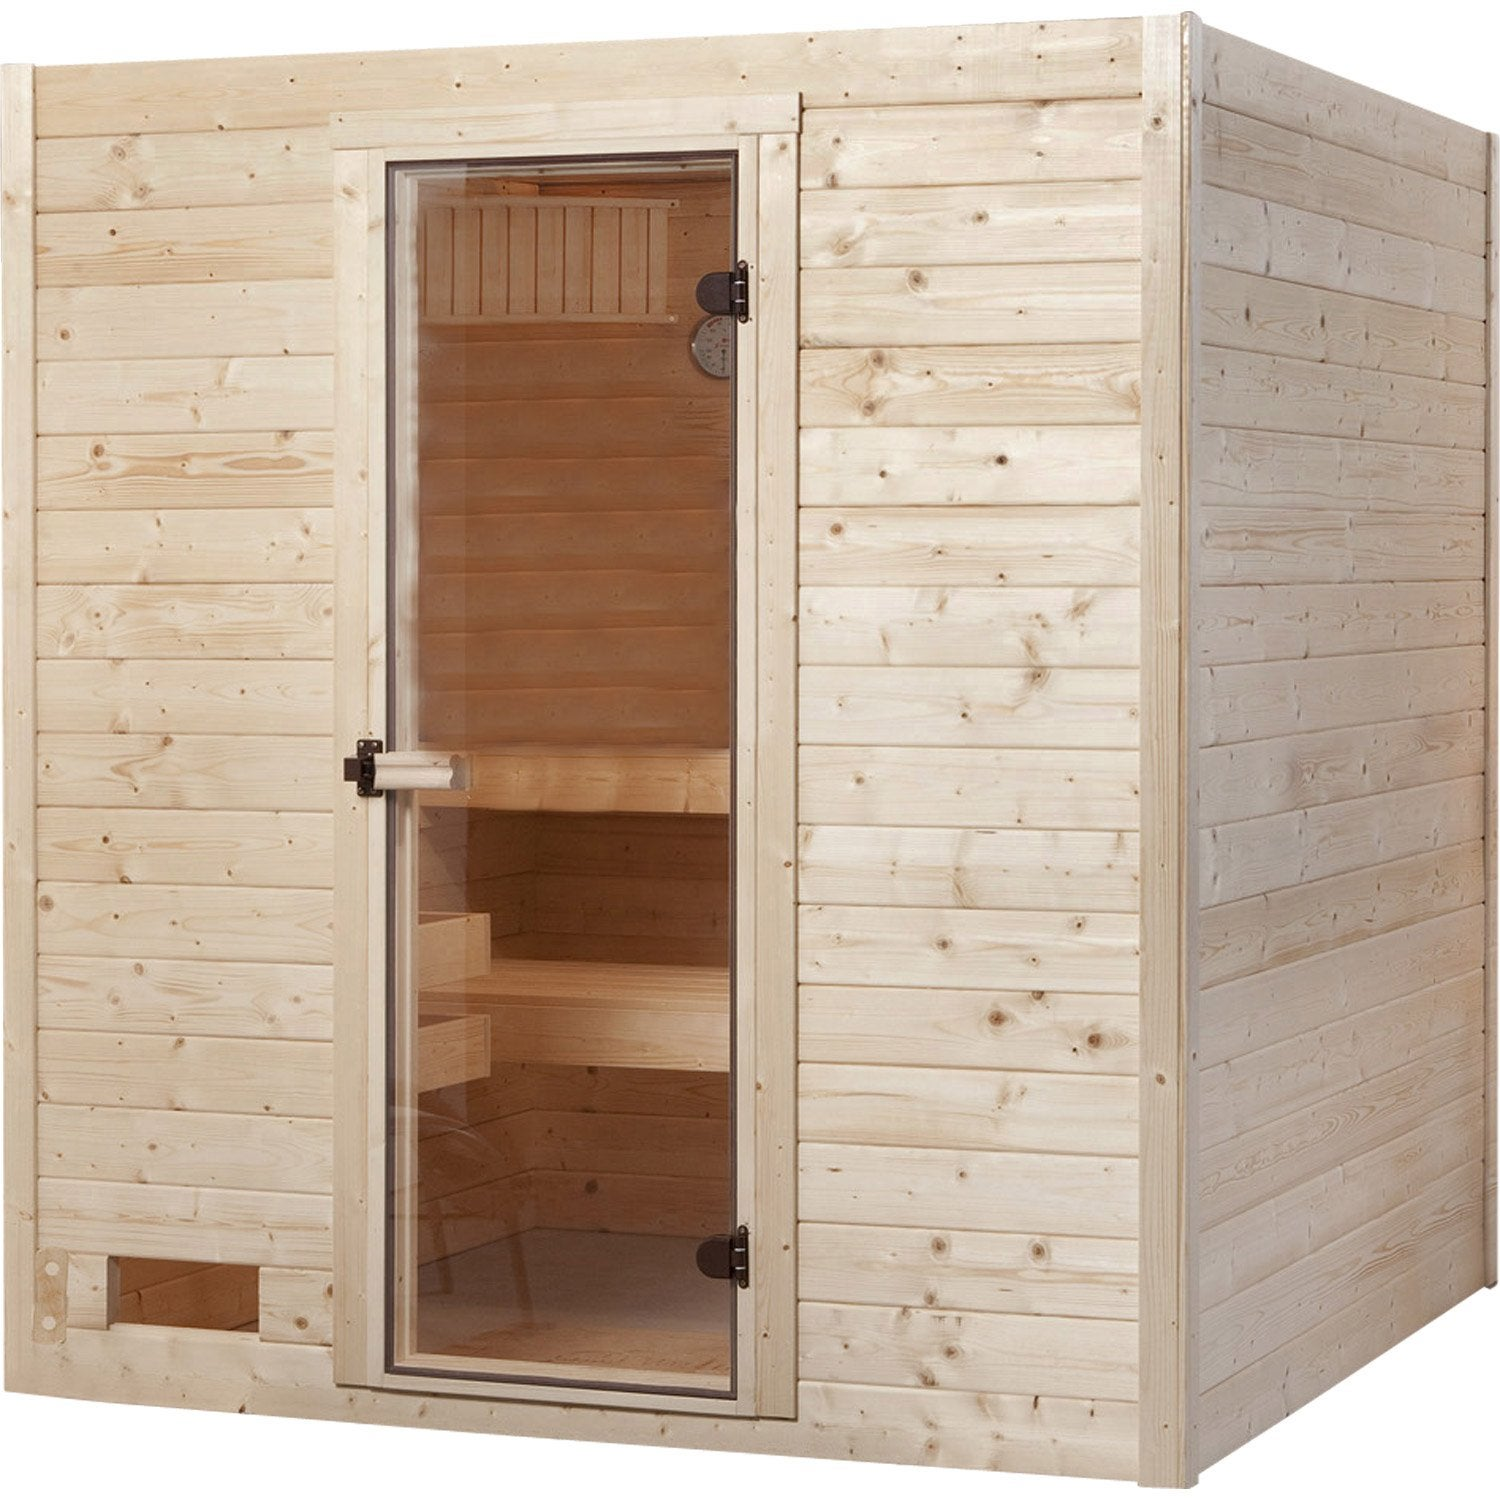 sauna traditionnel 2 places mod le sauna set complet weka livraison incluse leroy merlin. Black Bedroom Furniture Sets. Home Design Ideas